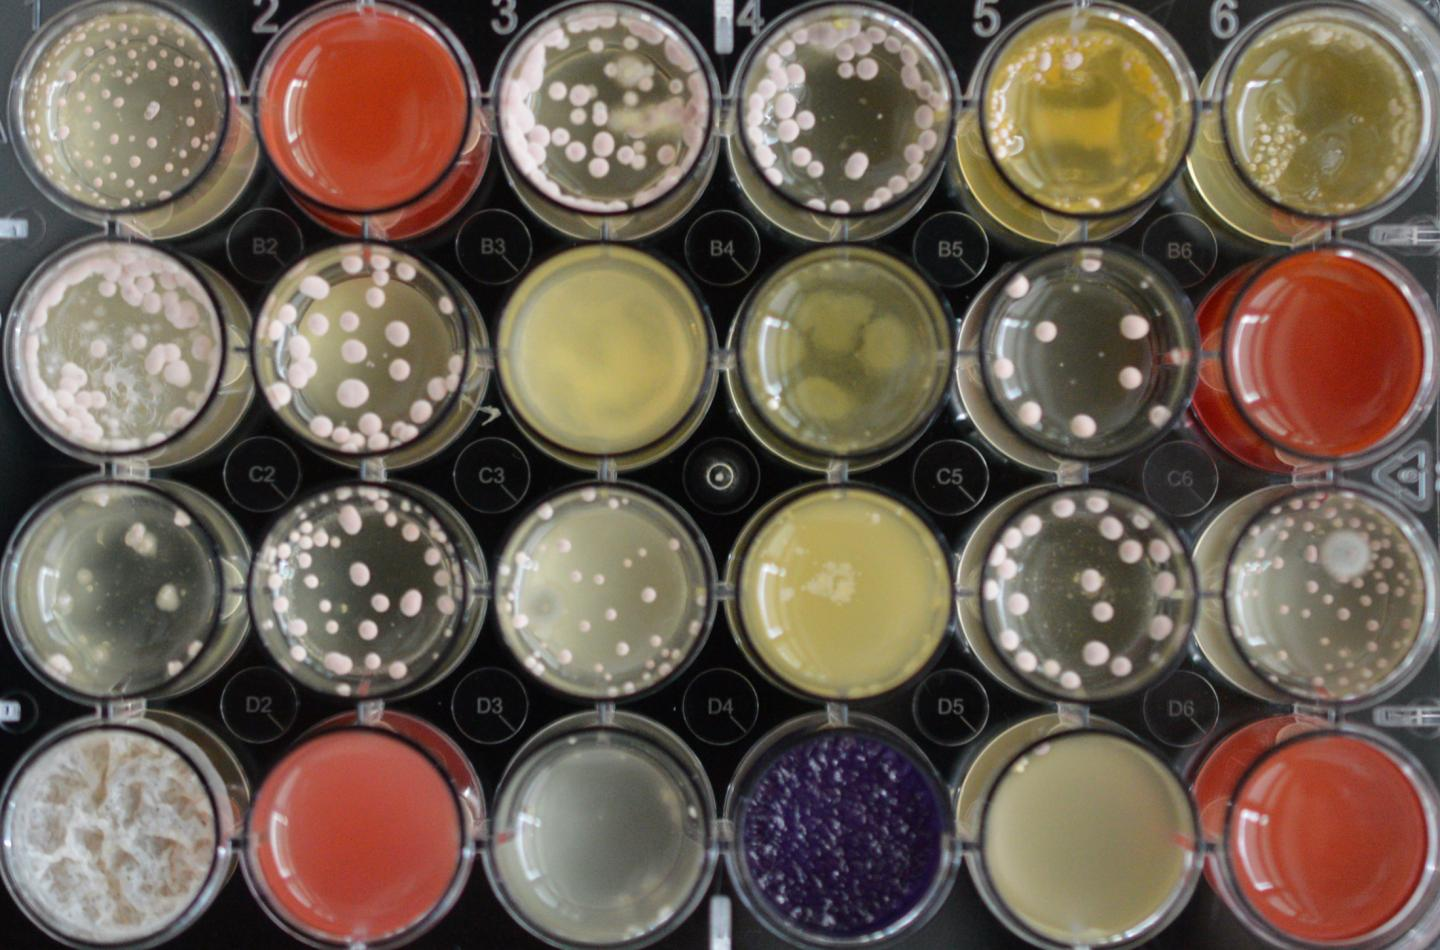 Microorgansims like fungi can be cultivated in the laboratory and stimulated with distinct substances for production of antibiotic metabolic products. / Credit: BiMM Research/Bioactive Microbial Metabolites